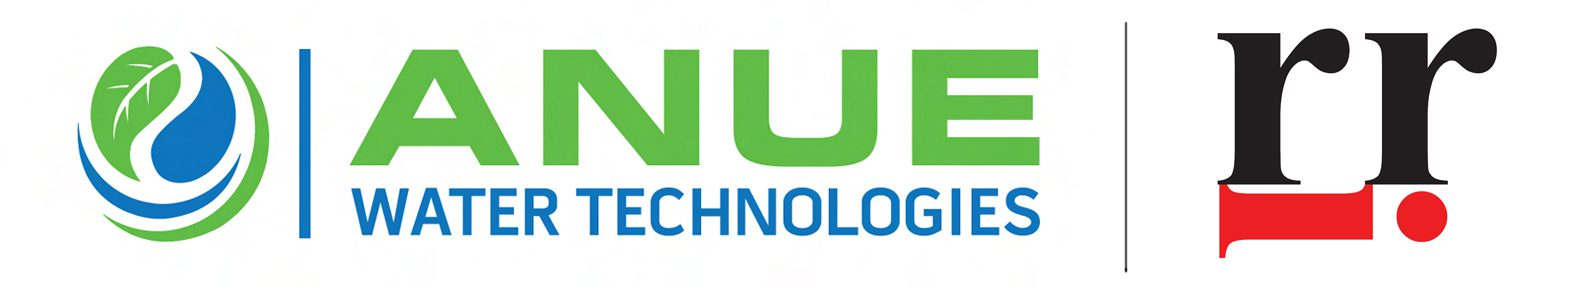 Anue Water's eco-friendly wastewater technologies launch into Six New England States with exclusive partner Russell Resources Inc.